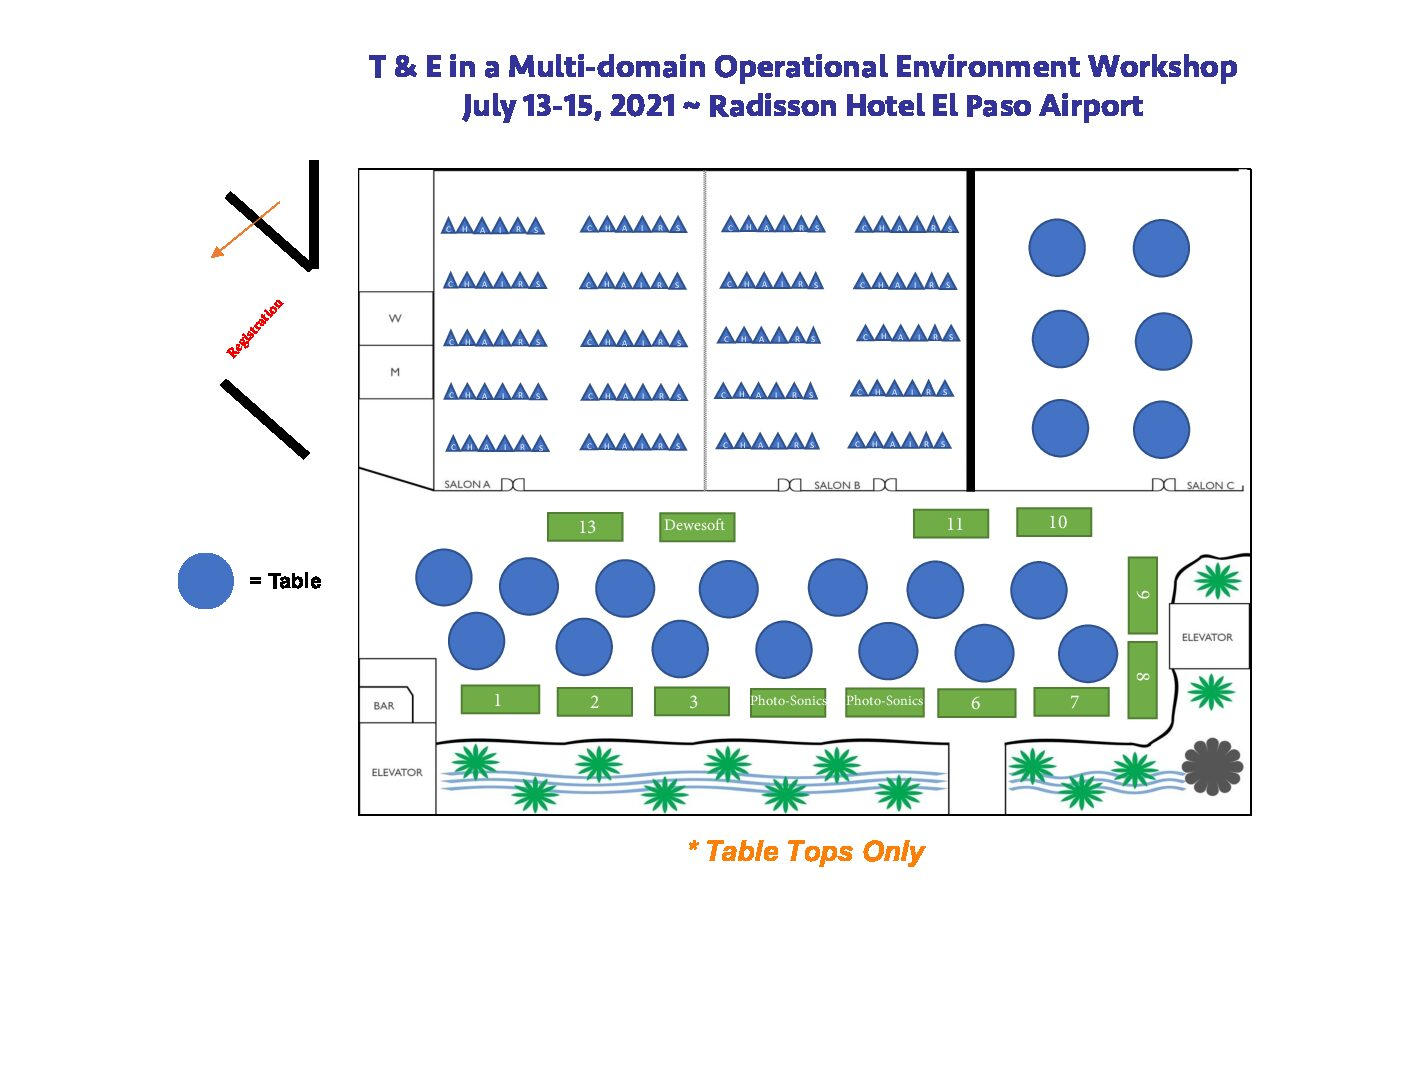 MDO Exhibit Hall Layout -April 16